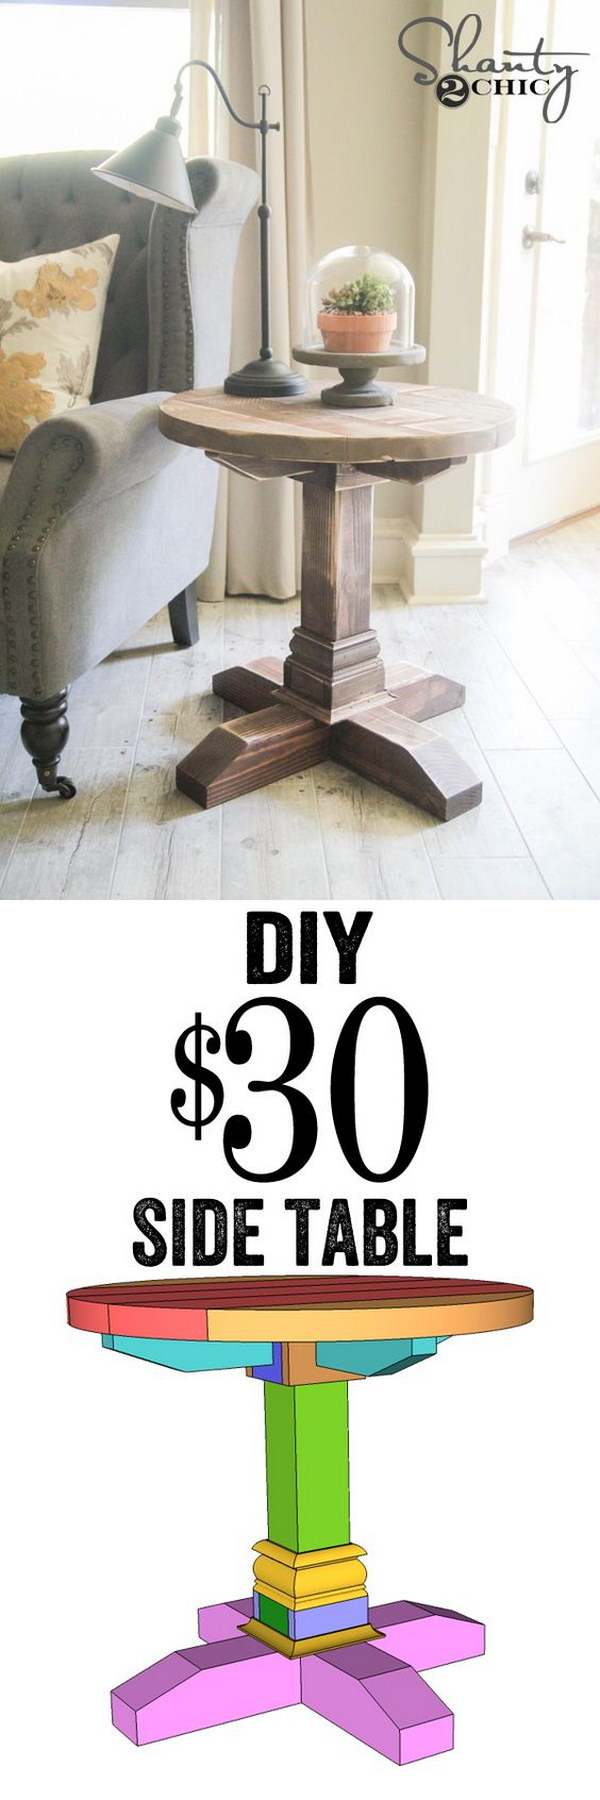 25 diy side table ideas with lots of tutorials 2017 for Round end table diy